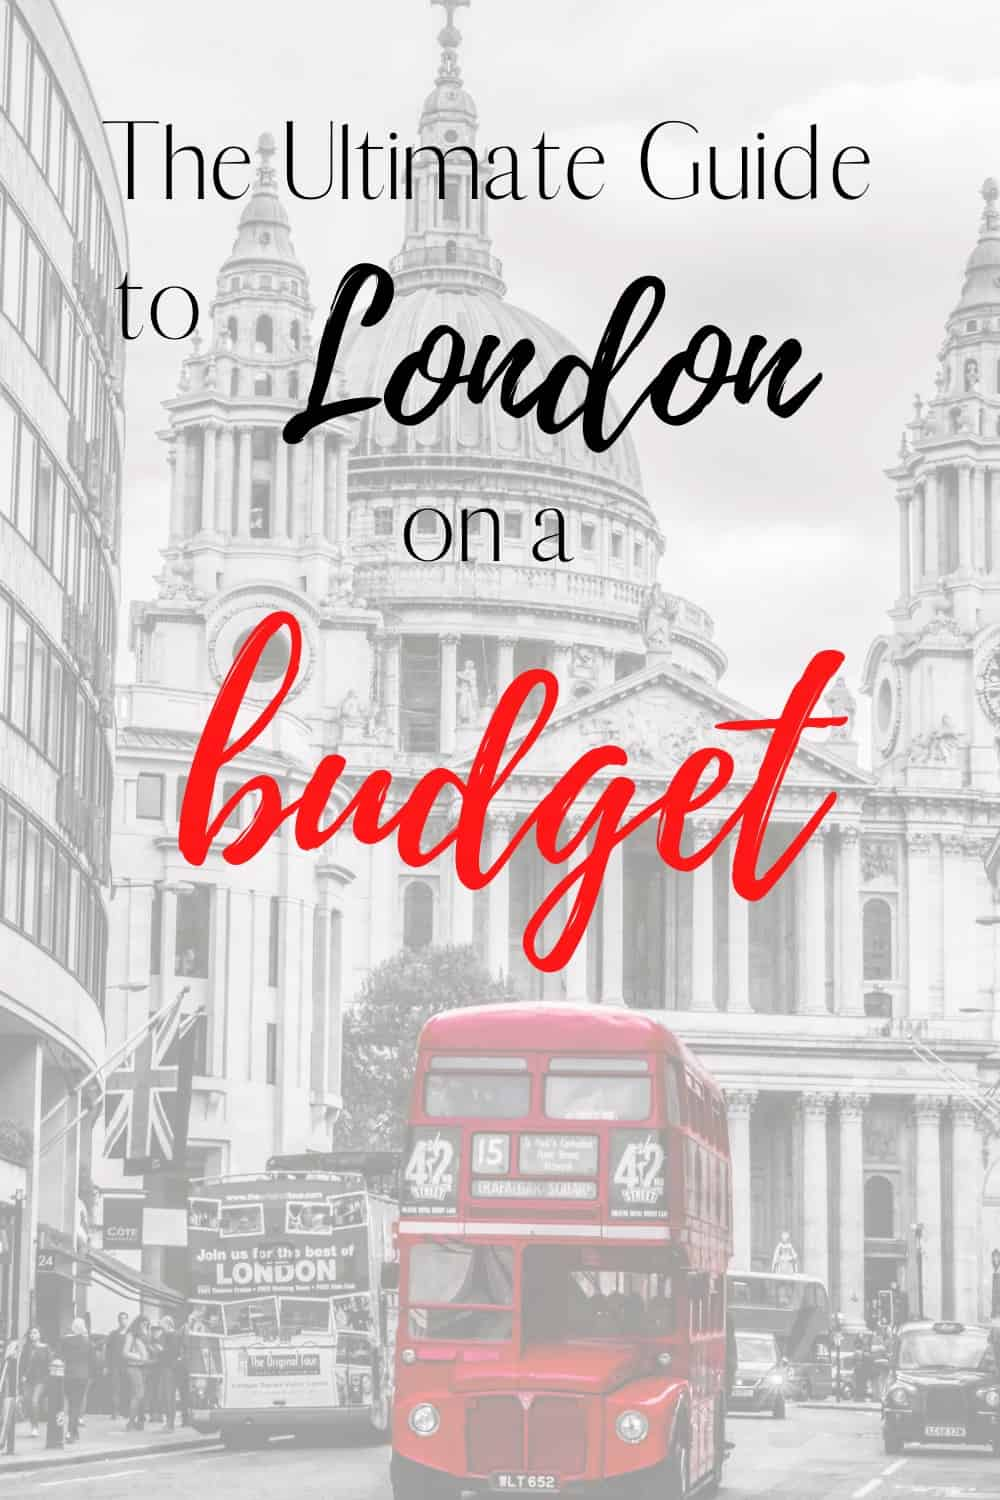 Tips for travelling London on a budget